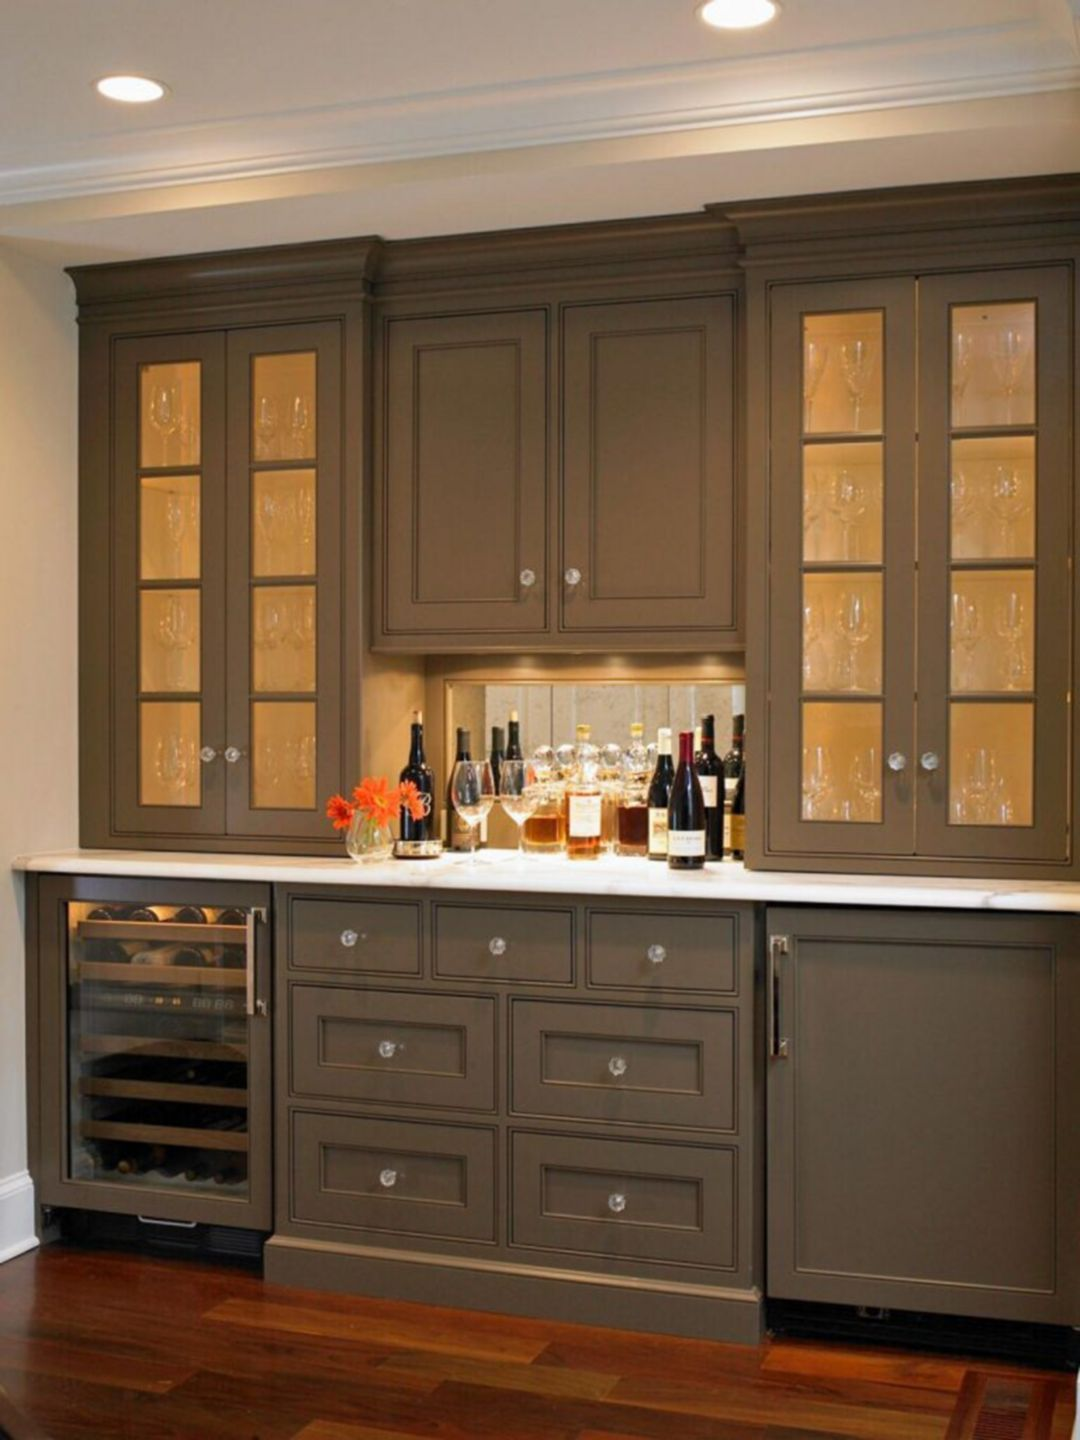 Kitchen Cabinet Color Options Dining Room Cabinet Kitchen Cabinet Co In 2020 Kitchen Cabinet Color Options Kitchen Cabinet Colors Painted Kitchen Cabinets Colors